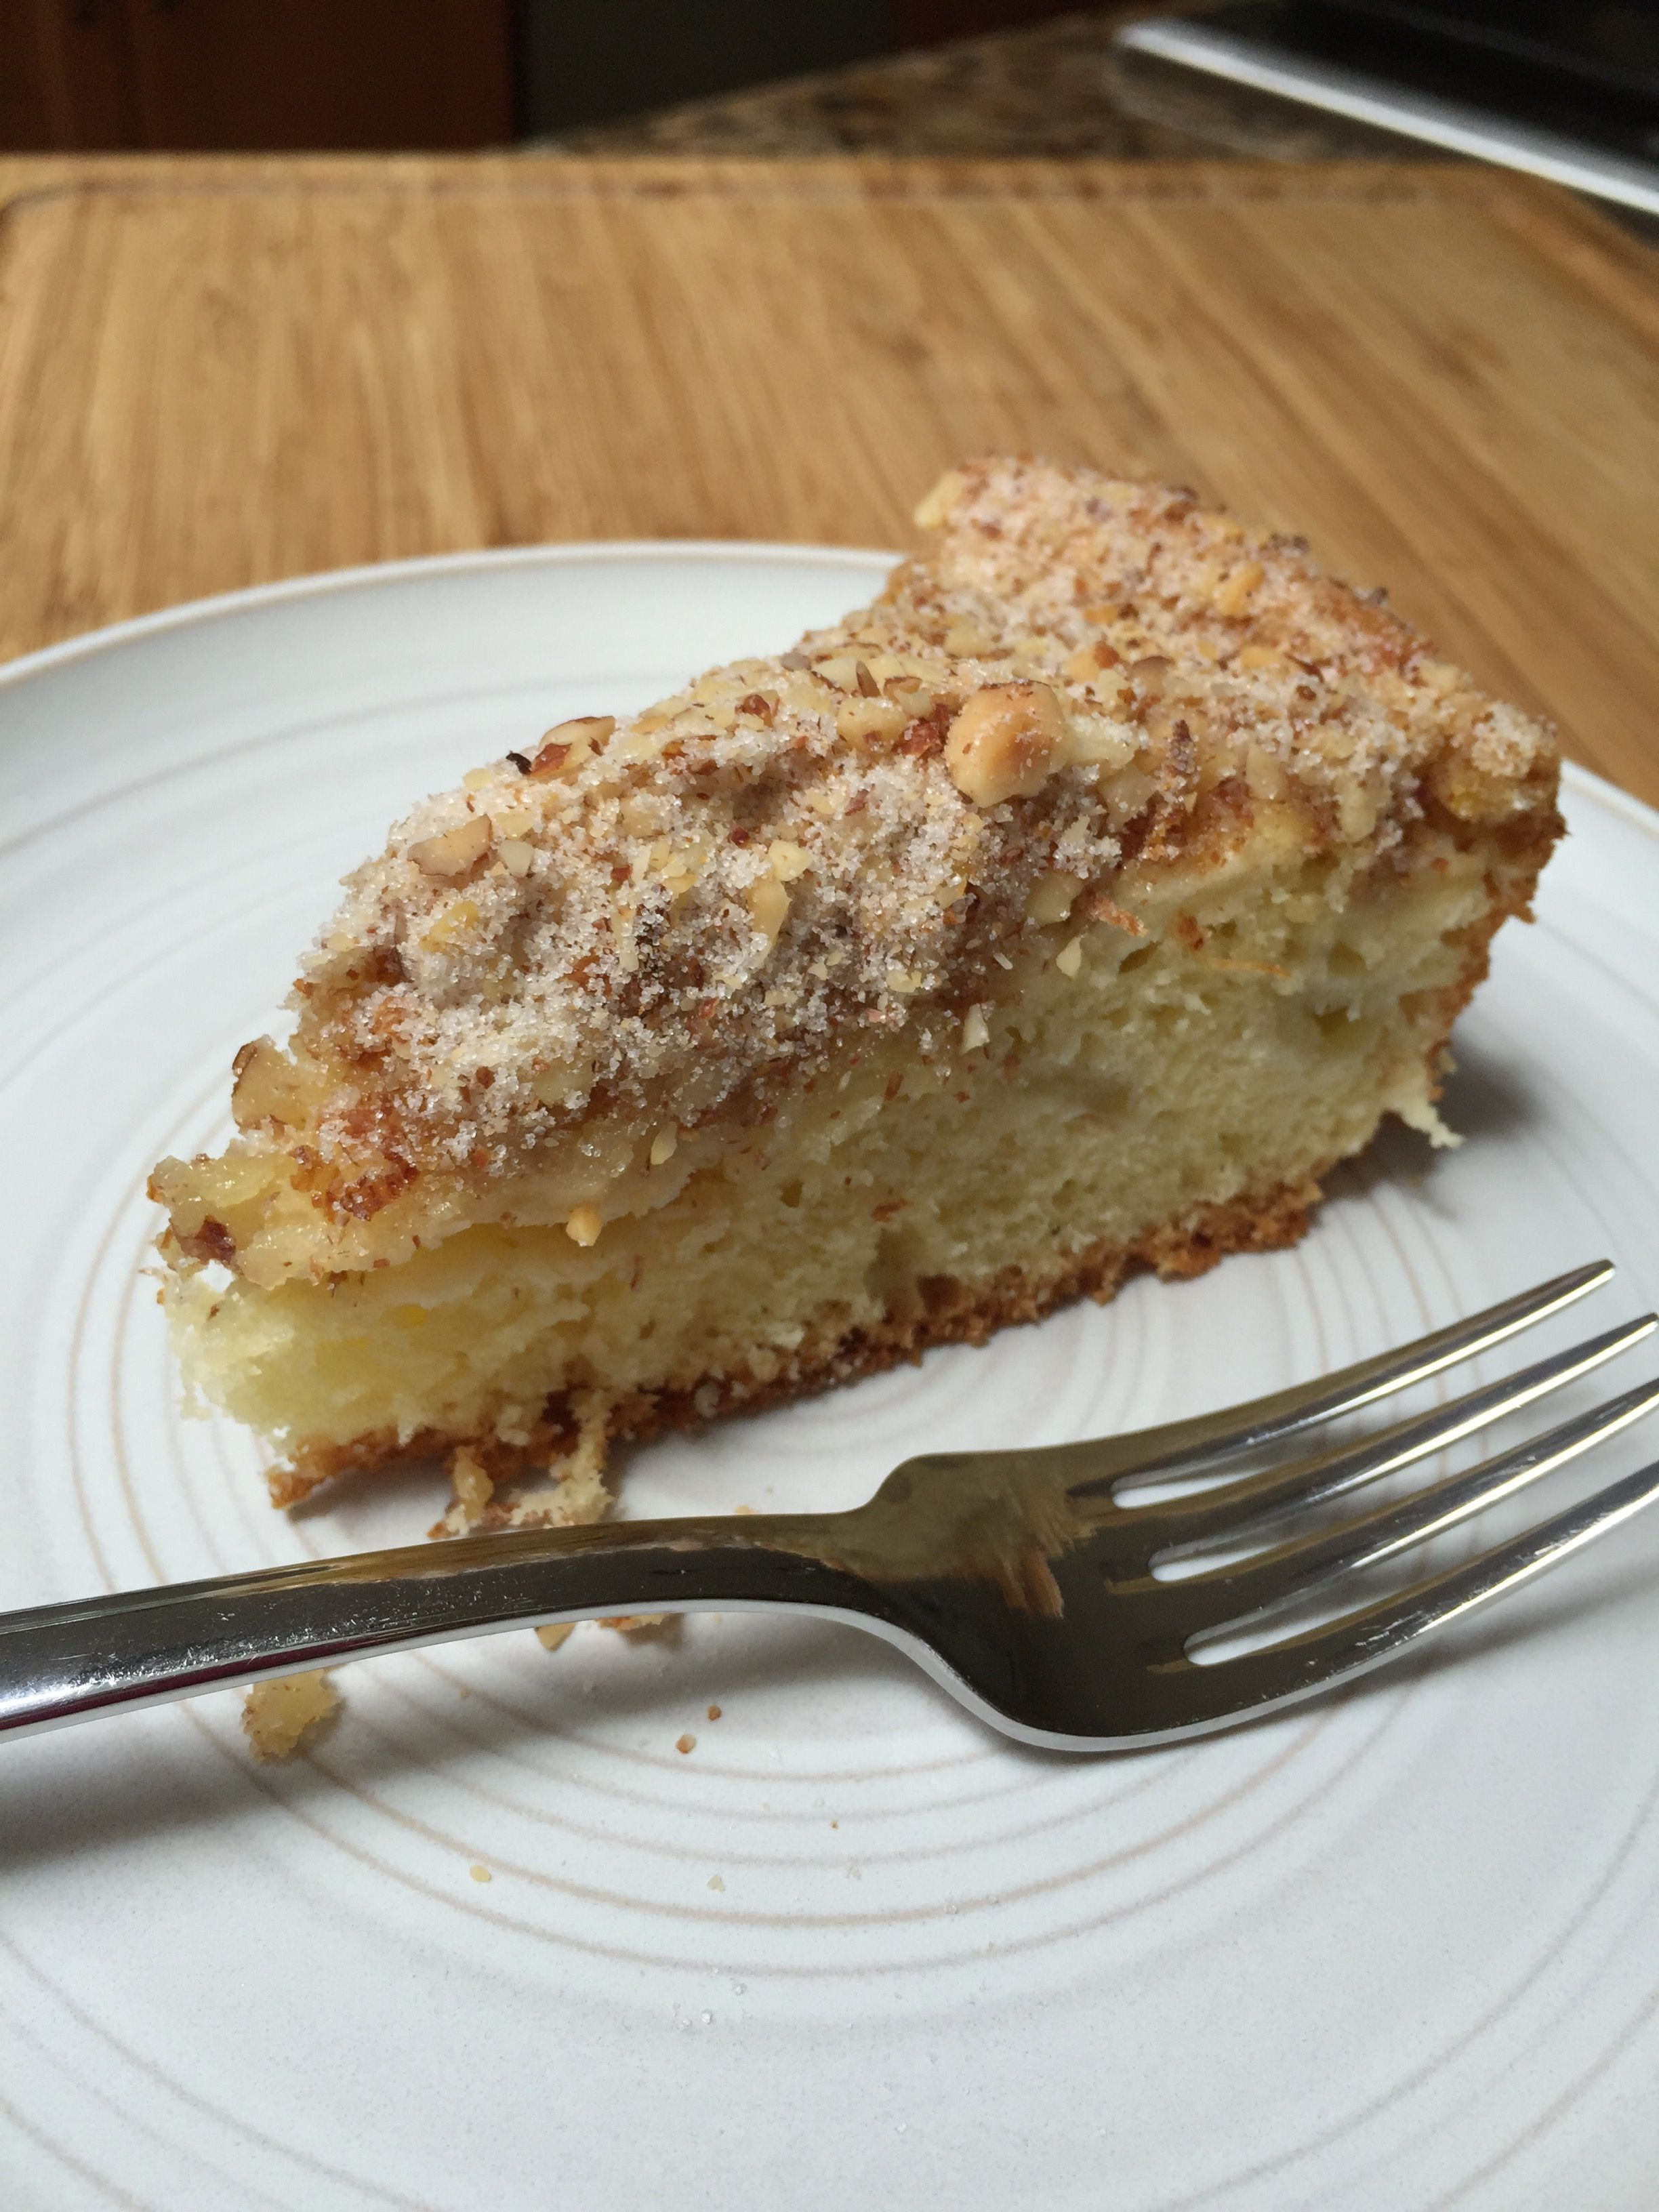 Pin by eric on eval dataset pinterest desert recipes easy and recipes forumfinder Images